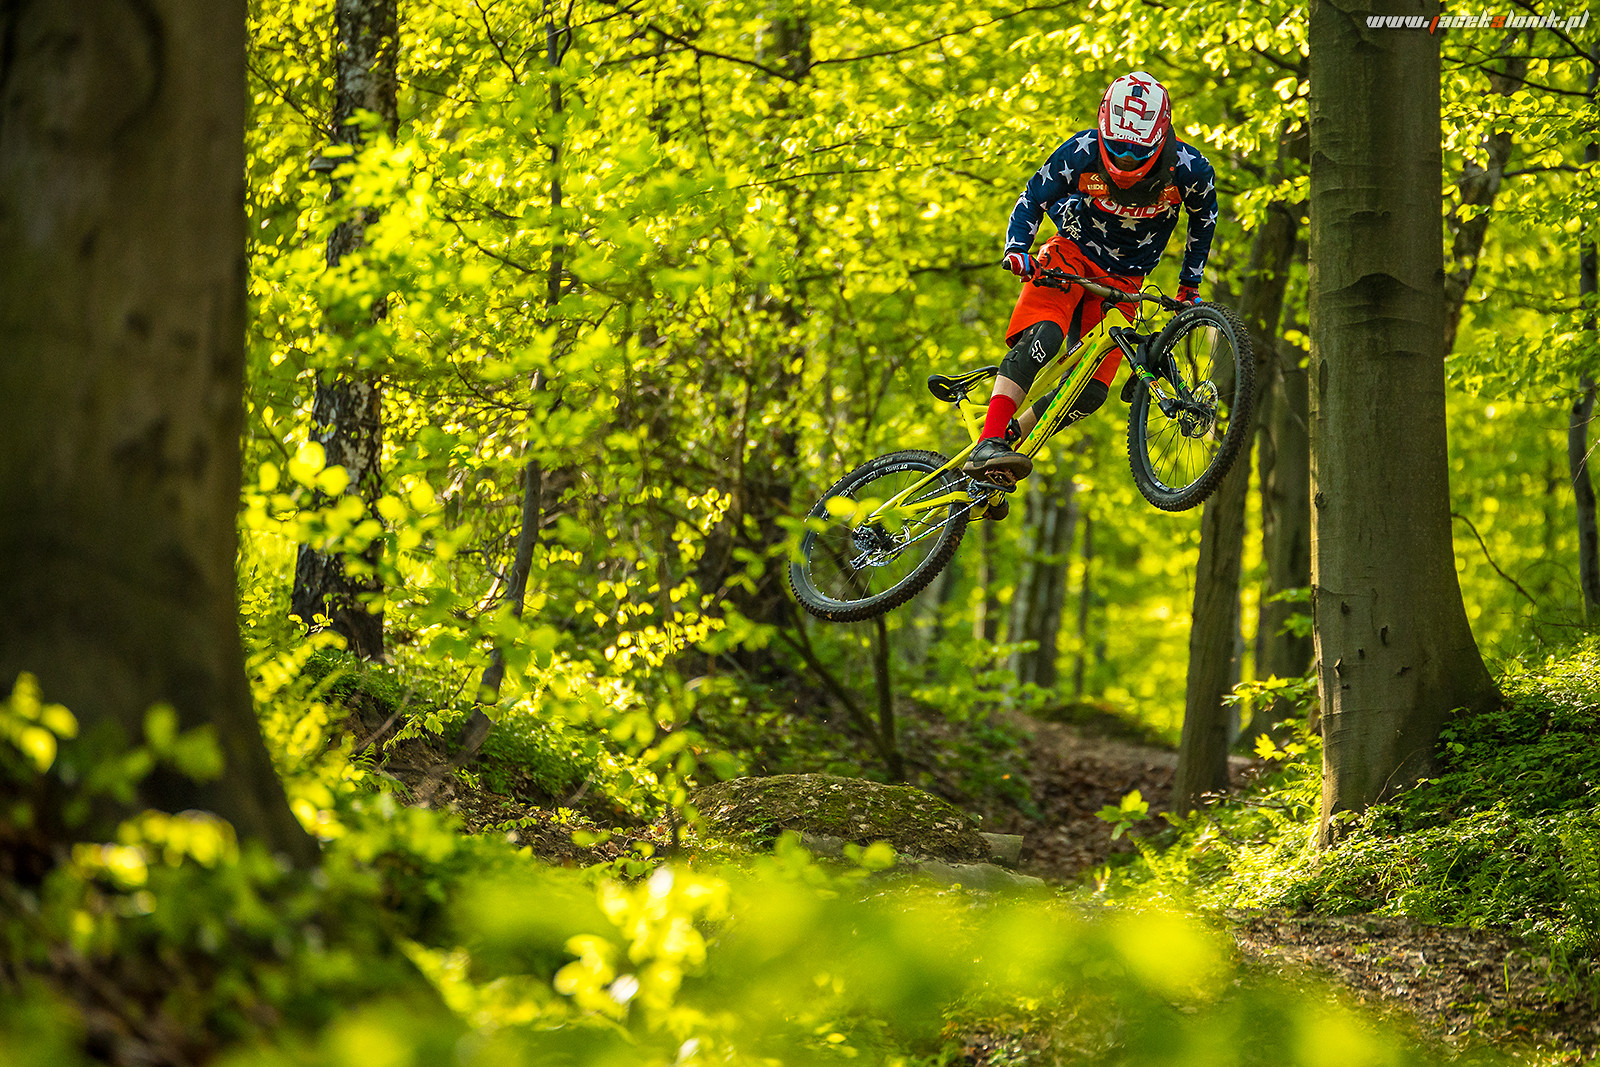 Whip it! - JacekSlonik - Mountain Biking Pictures - Vital MTB